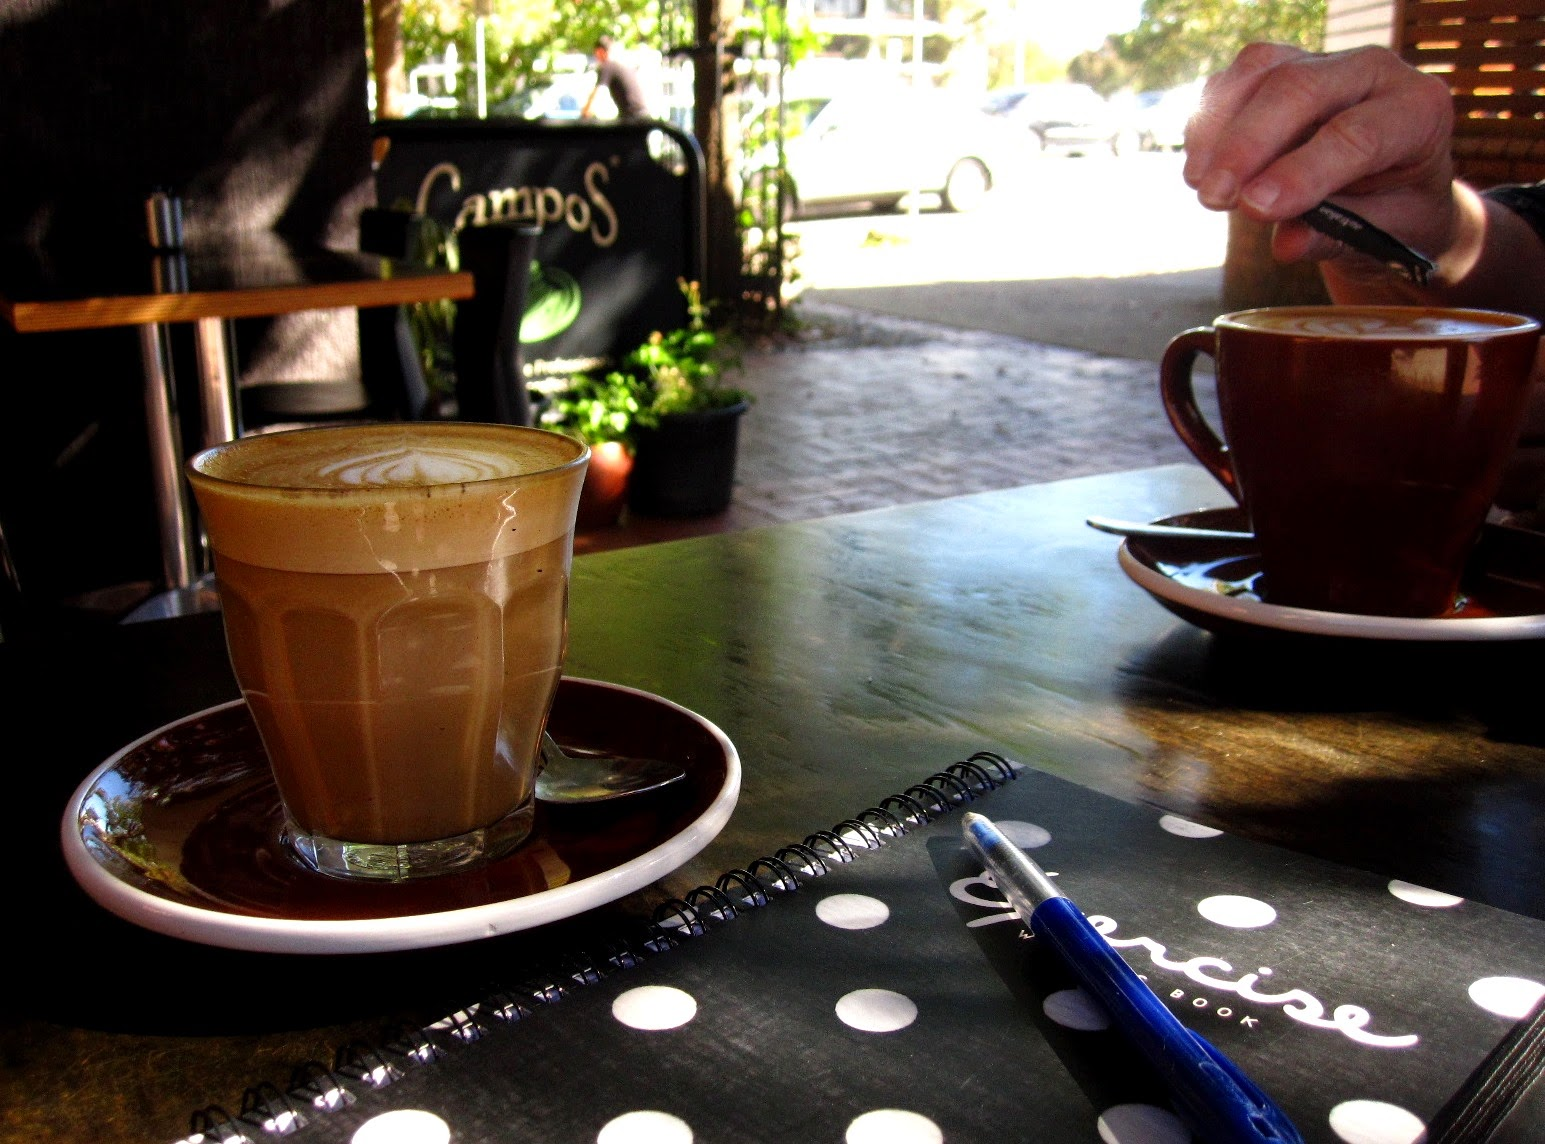 Two cups of coffee and a notebook on an outdoor cafe table.